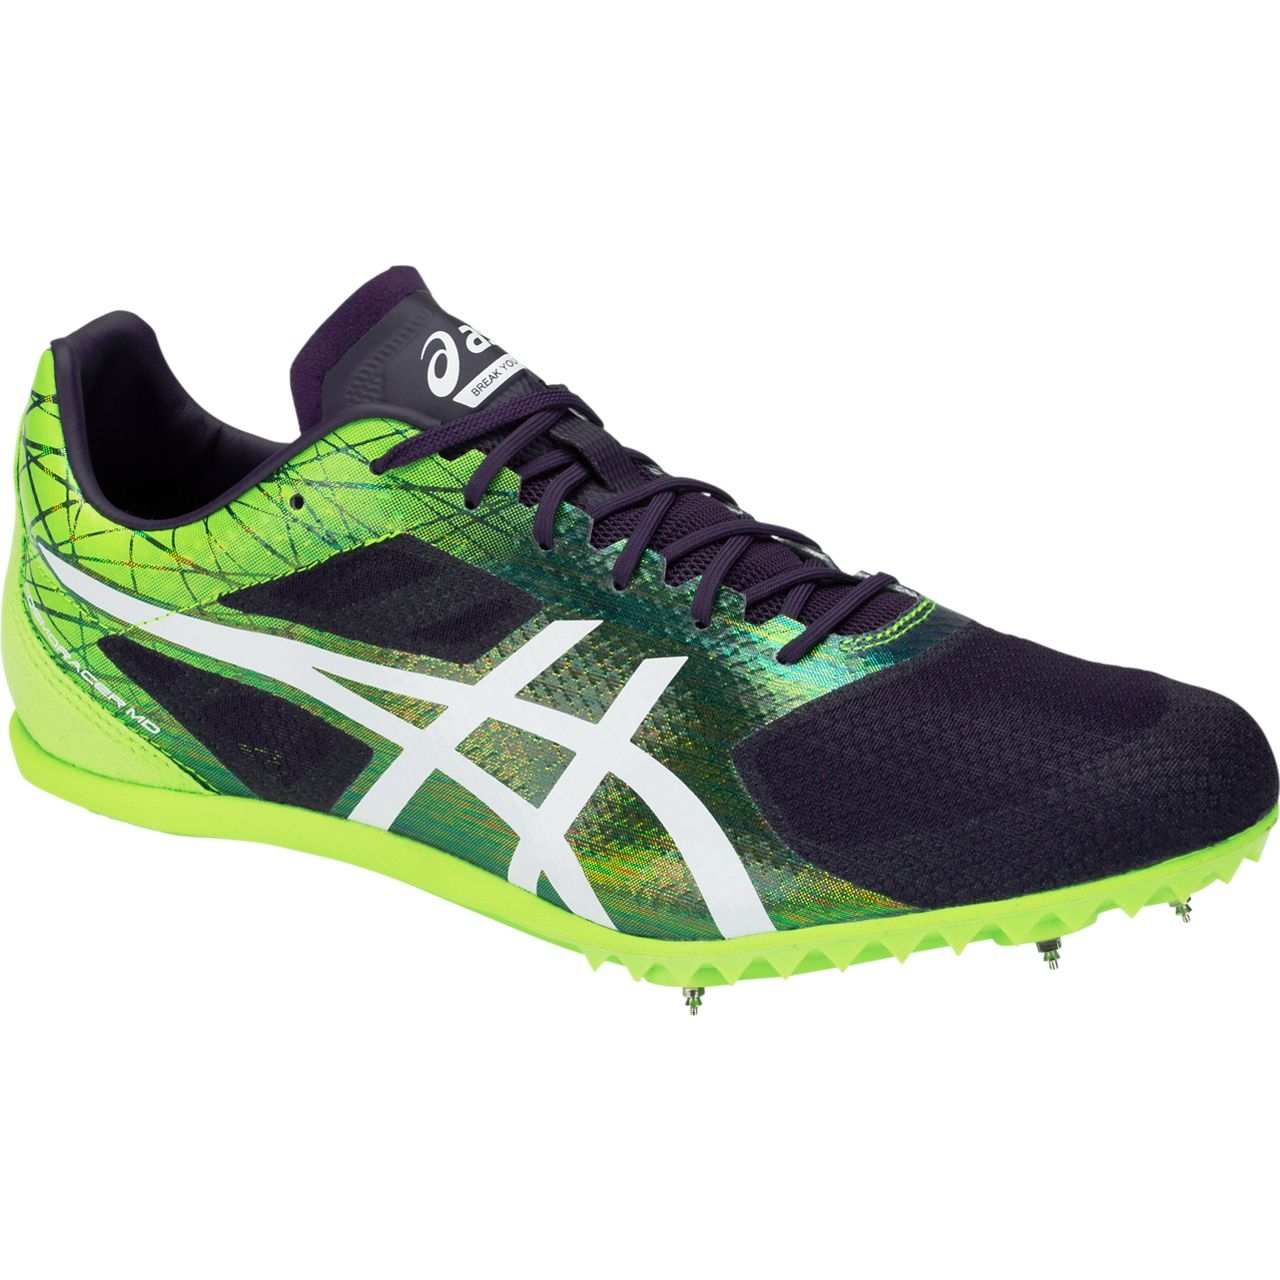 Grillo Folleto mucho  ASICS Cosmoracer MD Shoe - Men's Track | RevUp Sports